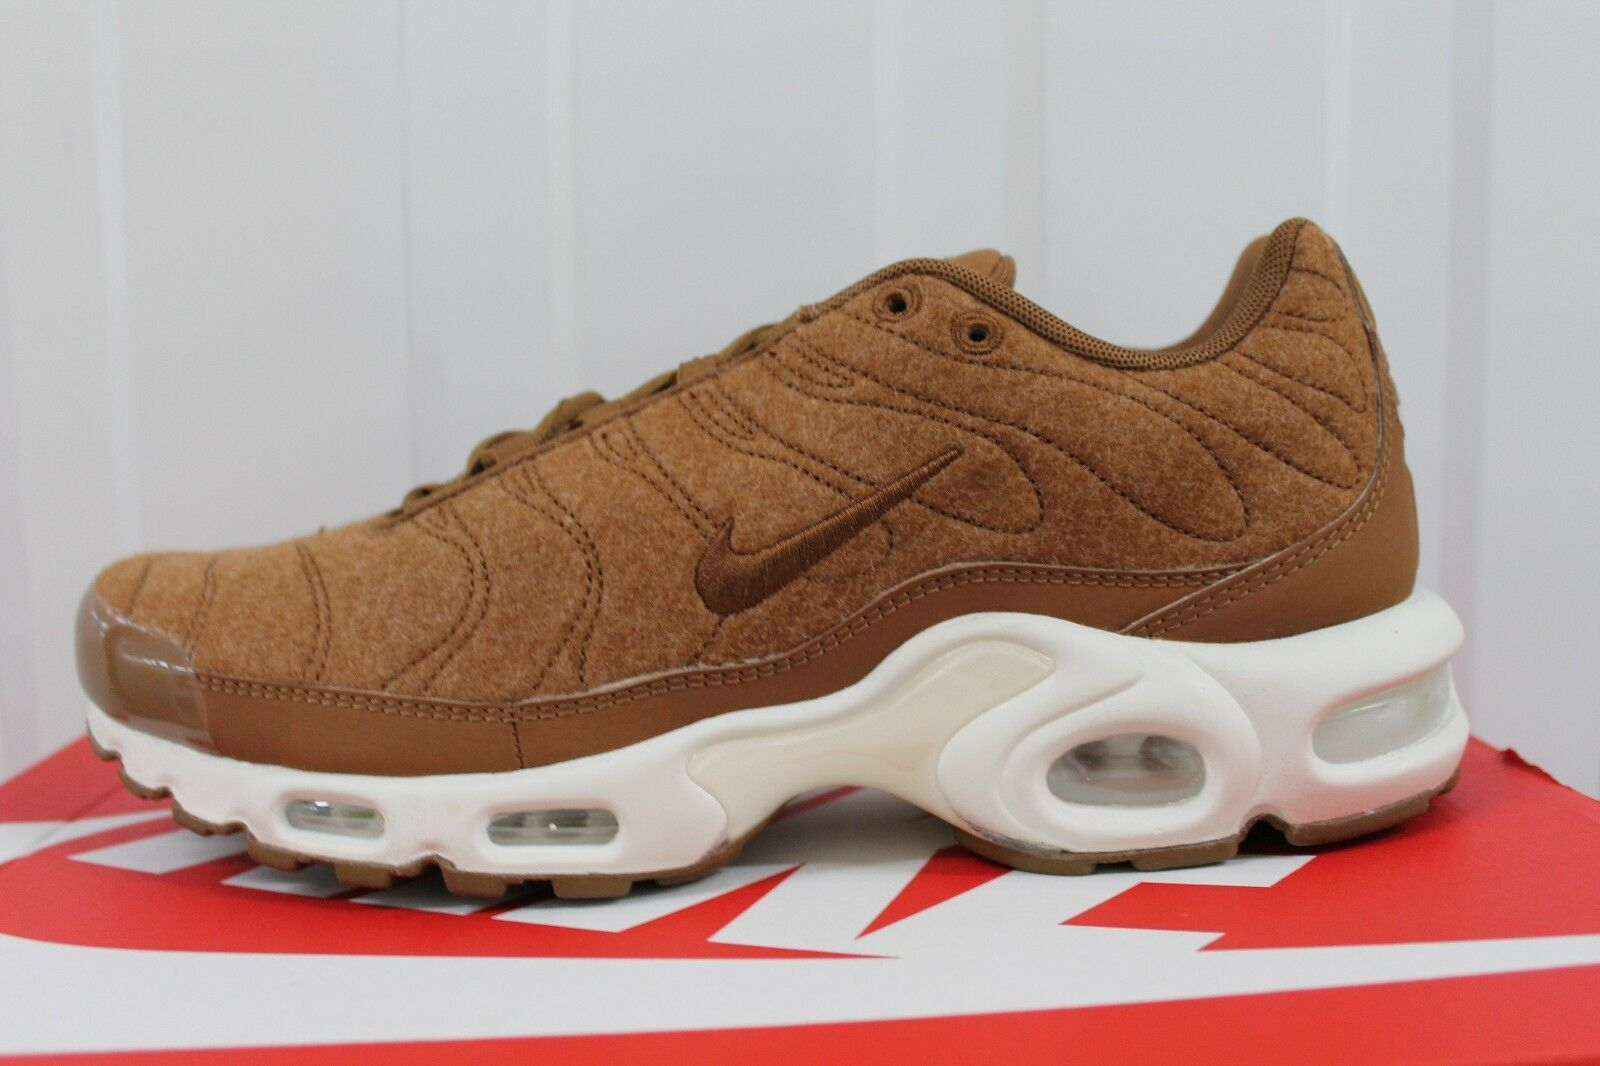 MEN,S NIKE AIR MAX PLUS TN QUILTED ALE BROWN 806262-200 BNIB           70